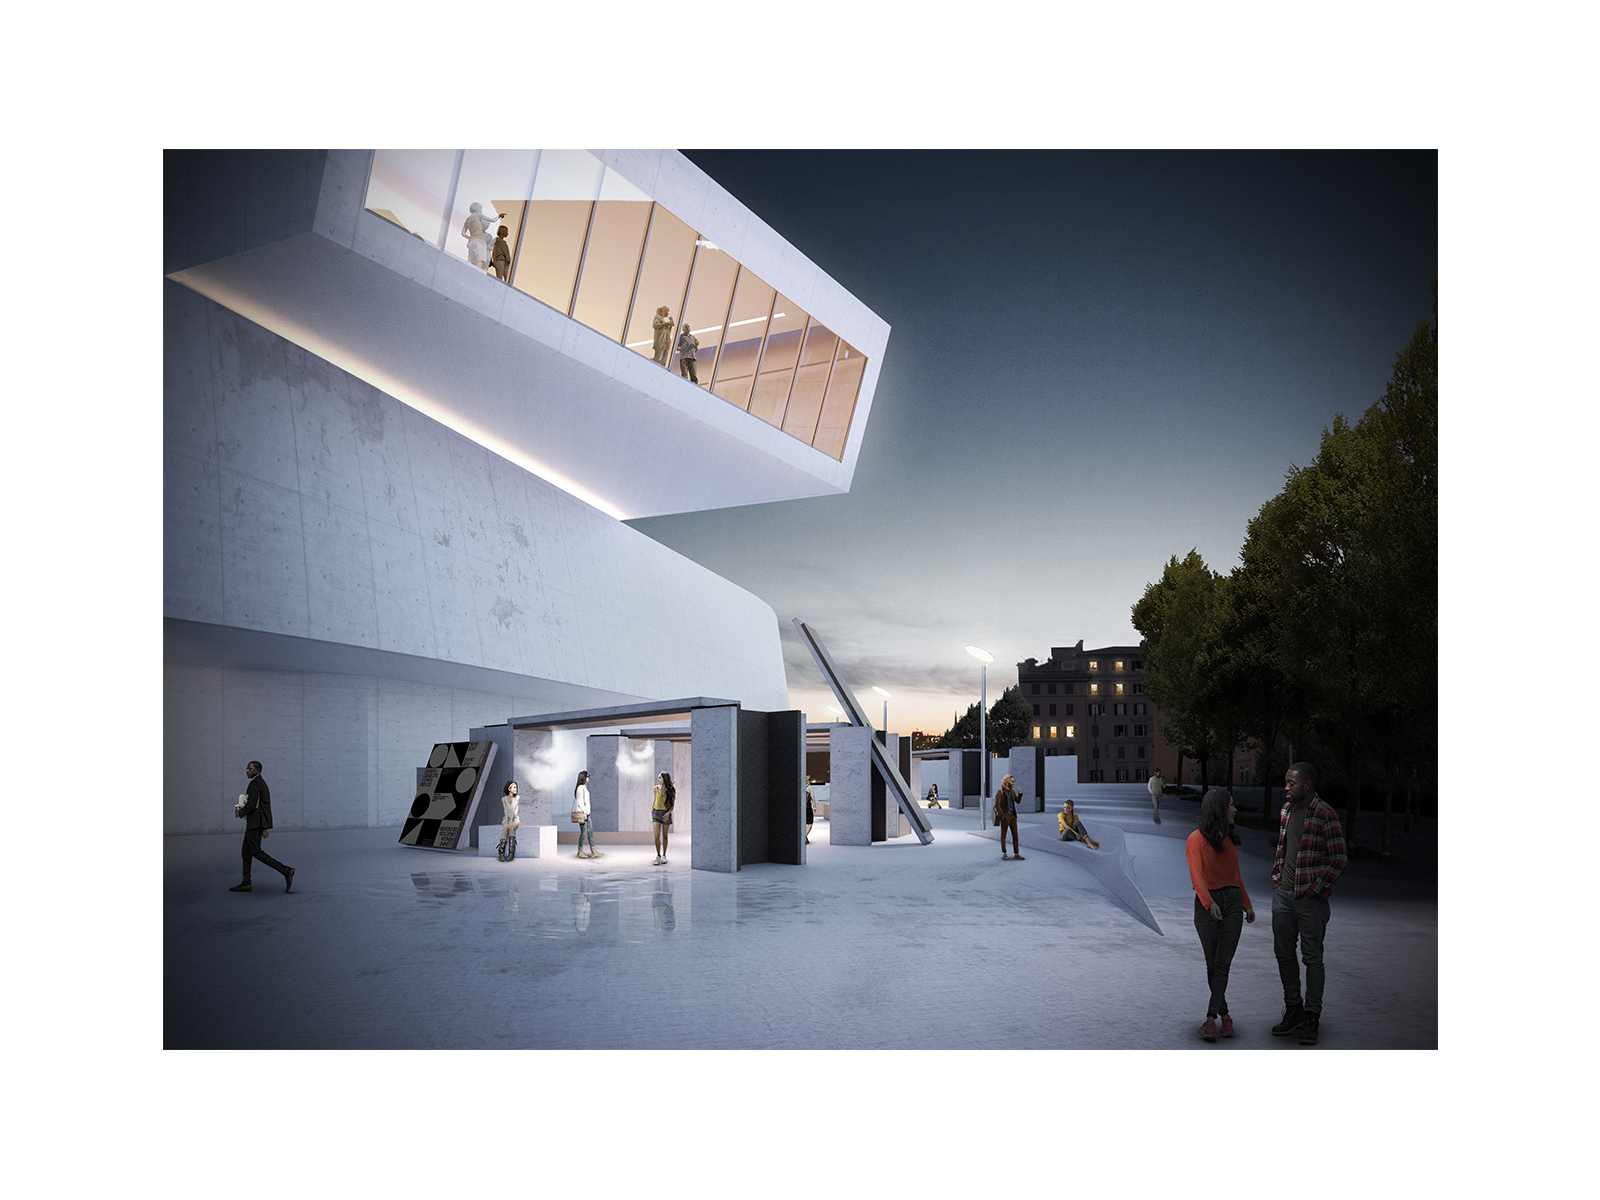 Architectural Visualization for SUMMARY architects proposal for MAXXI Museum in Rome.